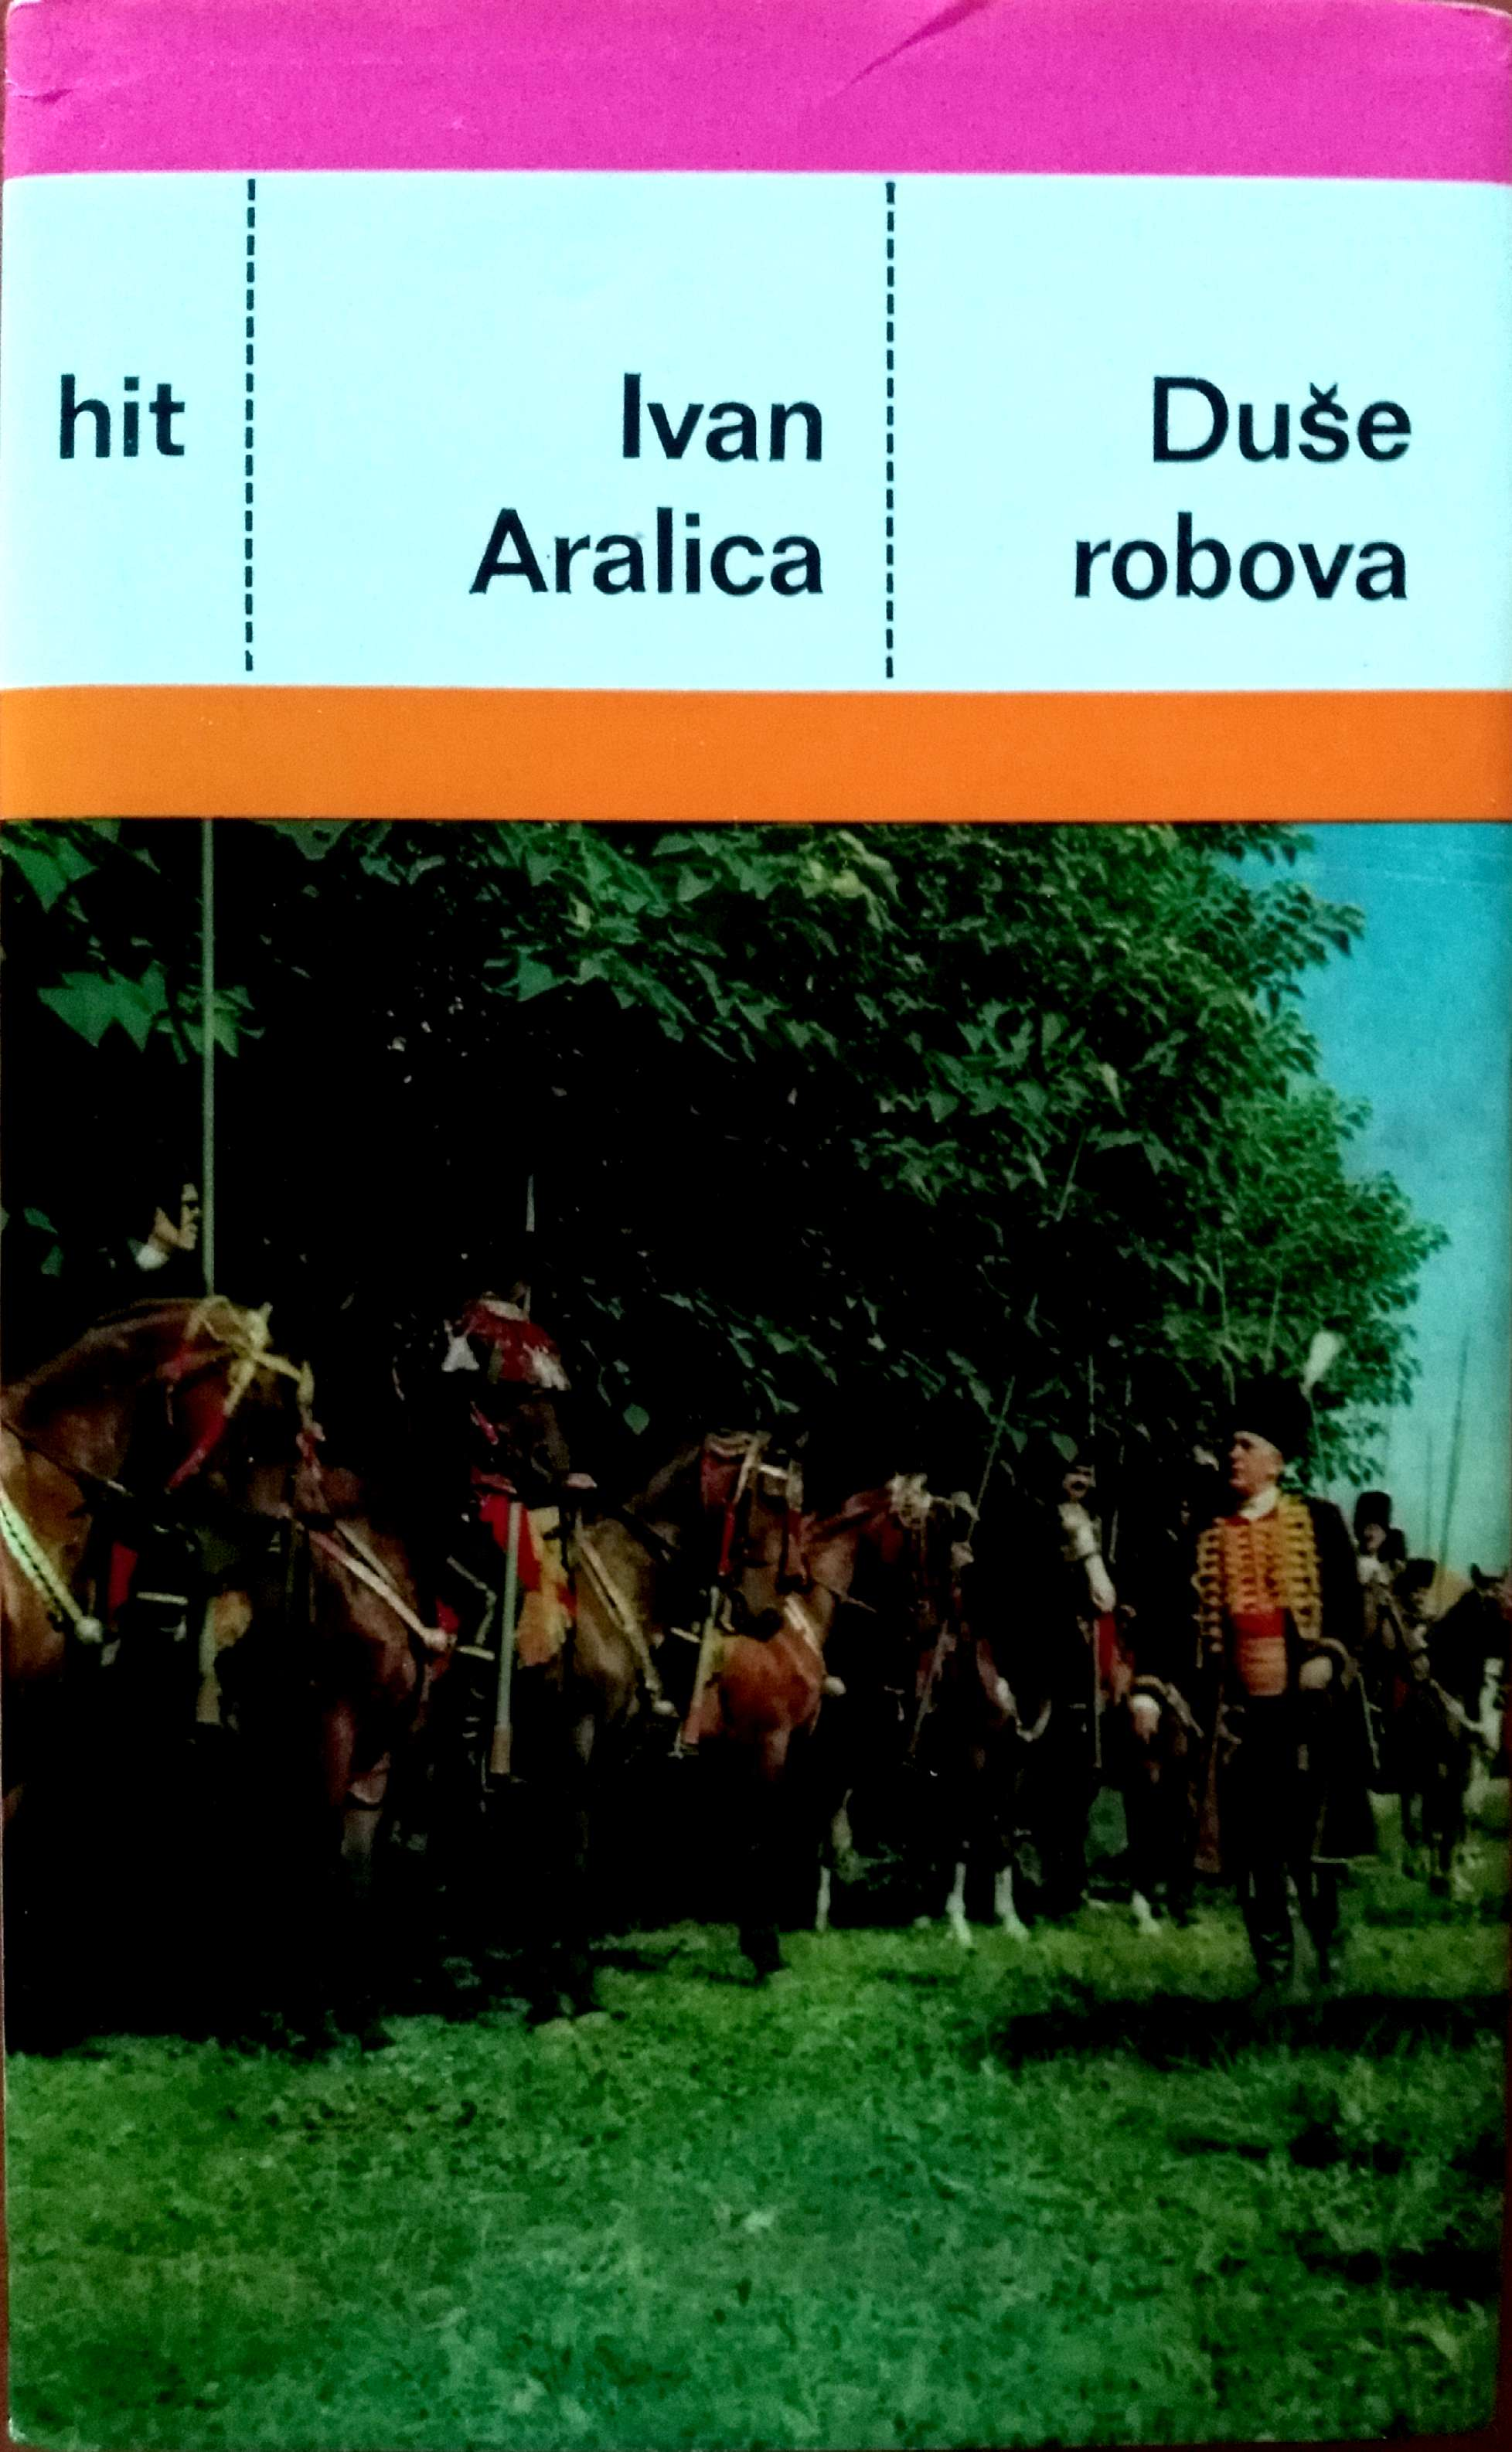 Cover of the novel Duše robova (The Souls of Slaves) by Ivan Aralica, first published in the HIT series by the Znanje publishing company in 1984 (2017-06-25).